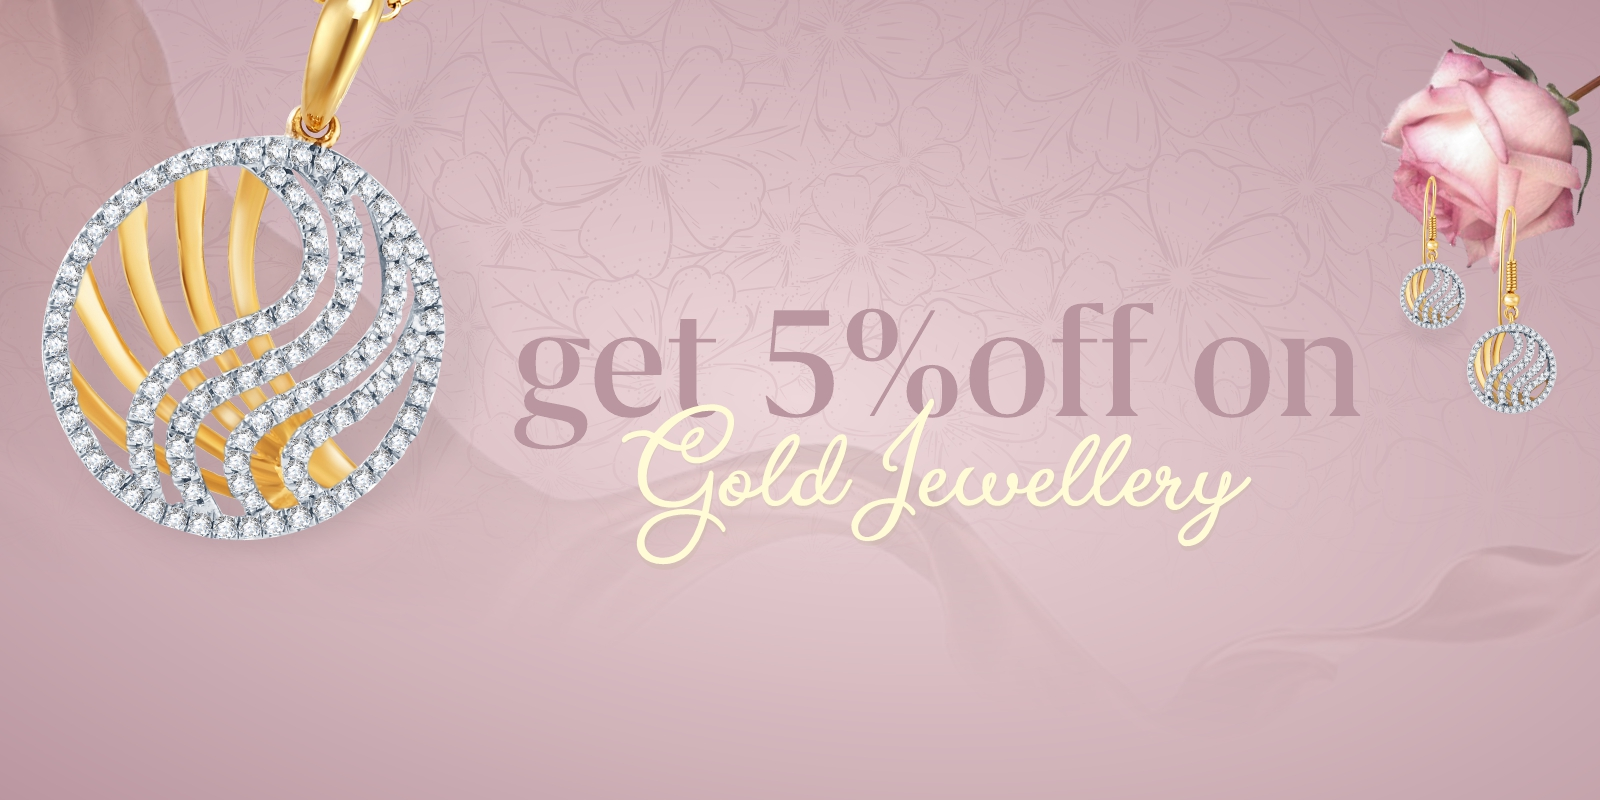 Get 5% OFF on Gold Jewellery